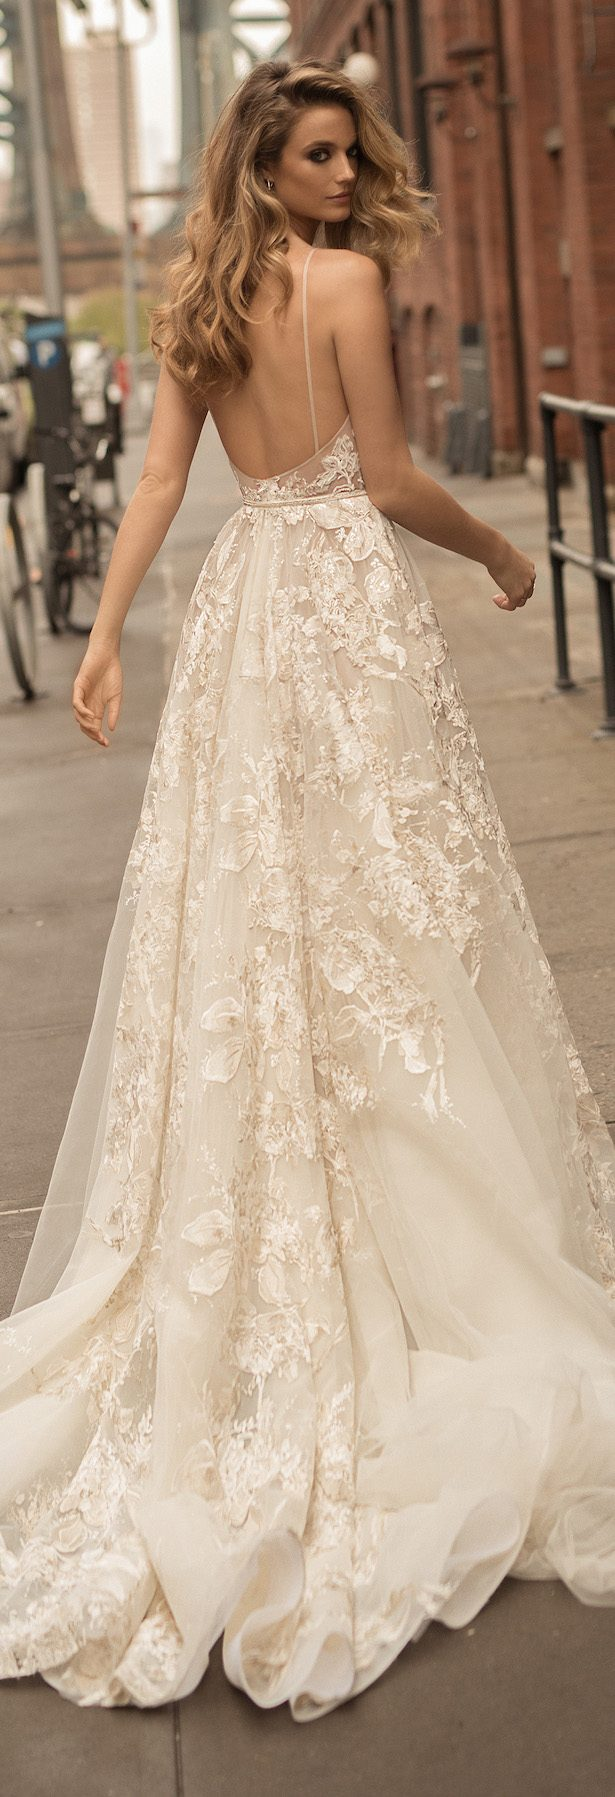 Best wedding dresses of 2017 belle the magazine best wedding dresses of 2017 berta wedding dress collection spring 2018 junglespirit